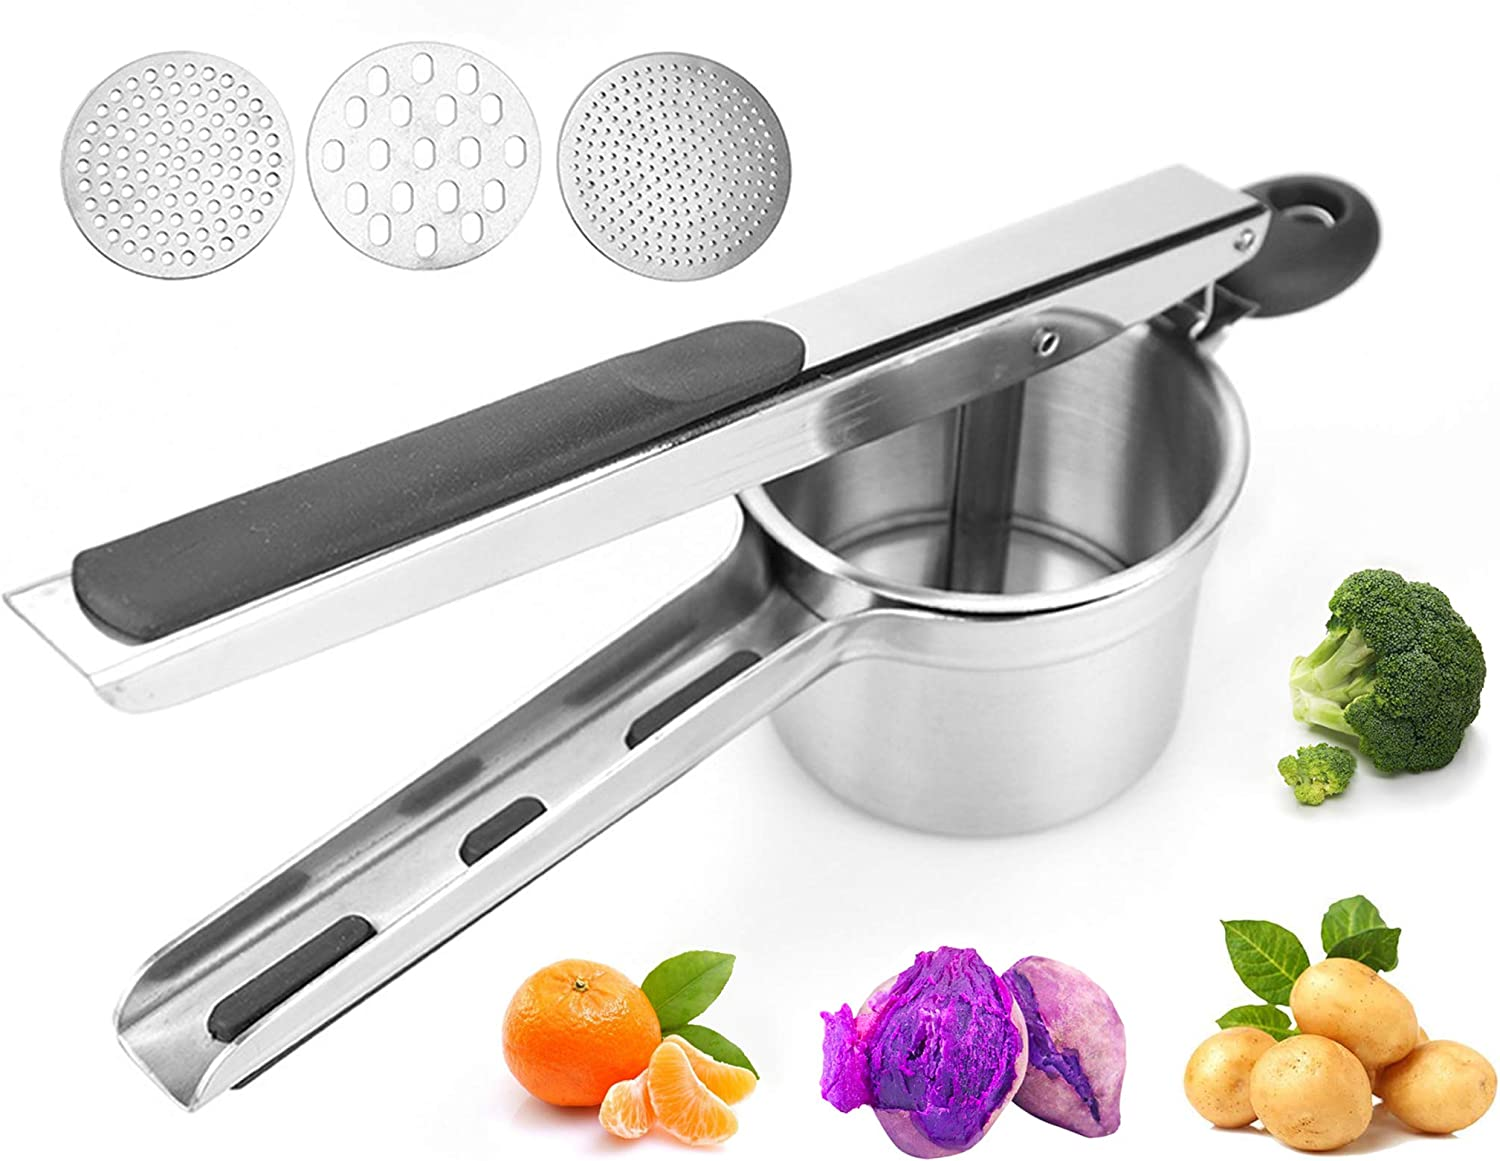 Ricer For Mashed Potatoes,Baby Food Masher,Stainless Steel Manual Potato Masher,Large Capacity,With 3 Replaceable Discs, Making Smooth Potato Mash Fruit Puree Vegetable Puree And Baby Food